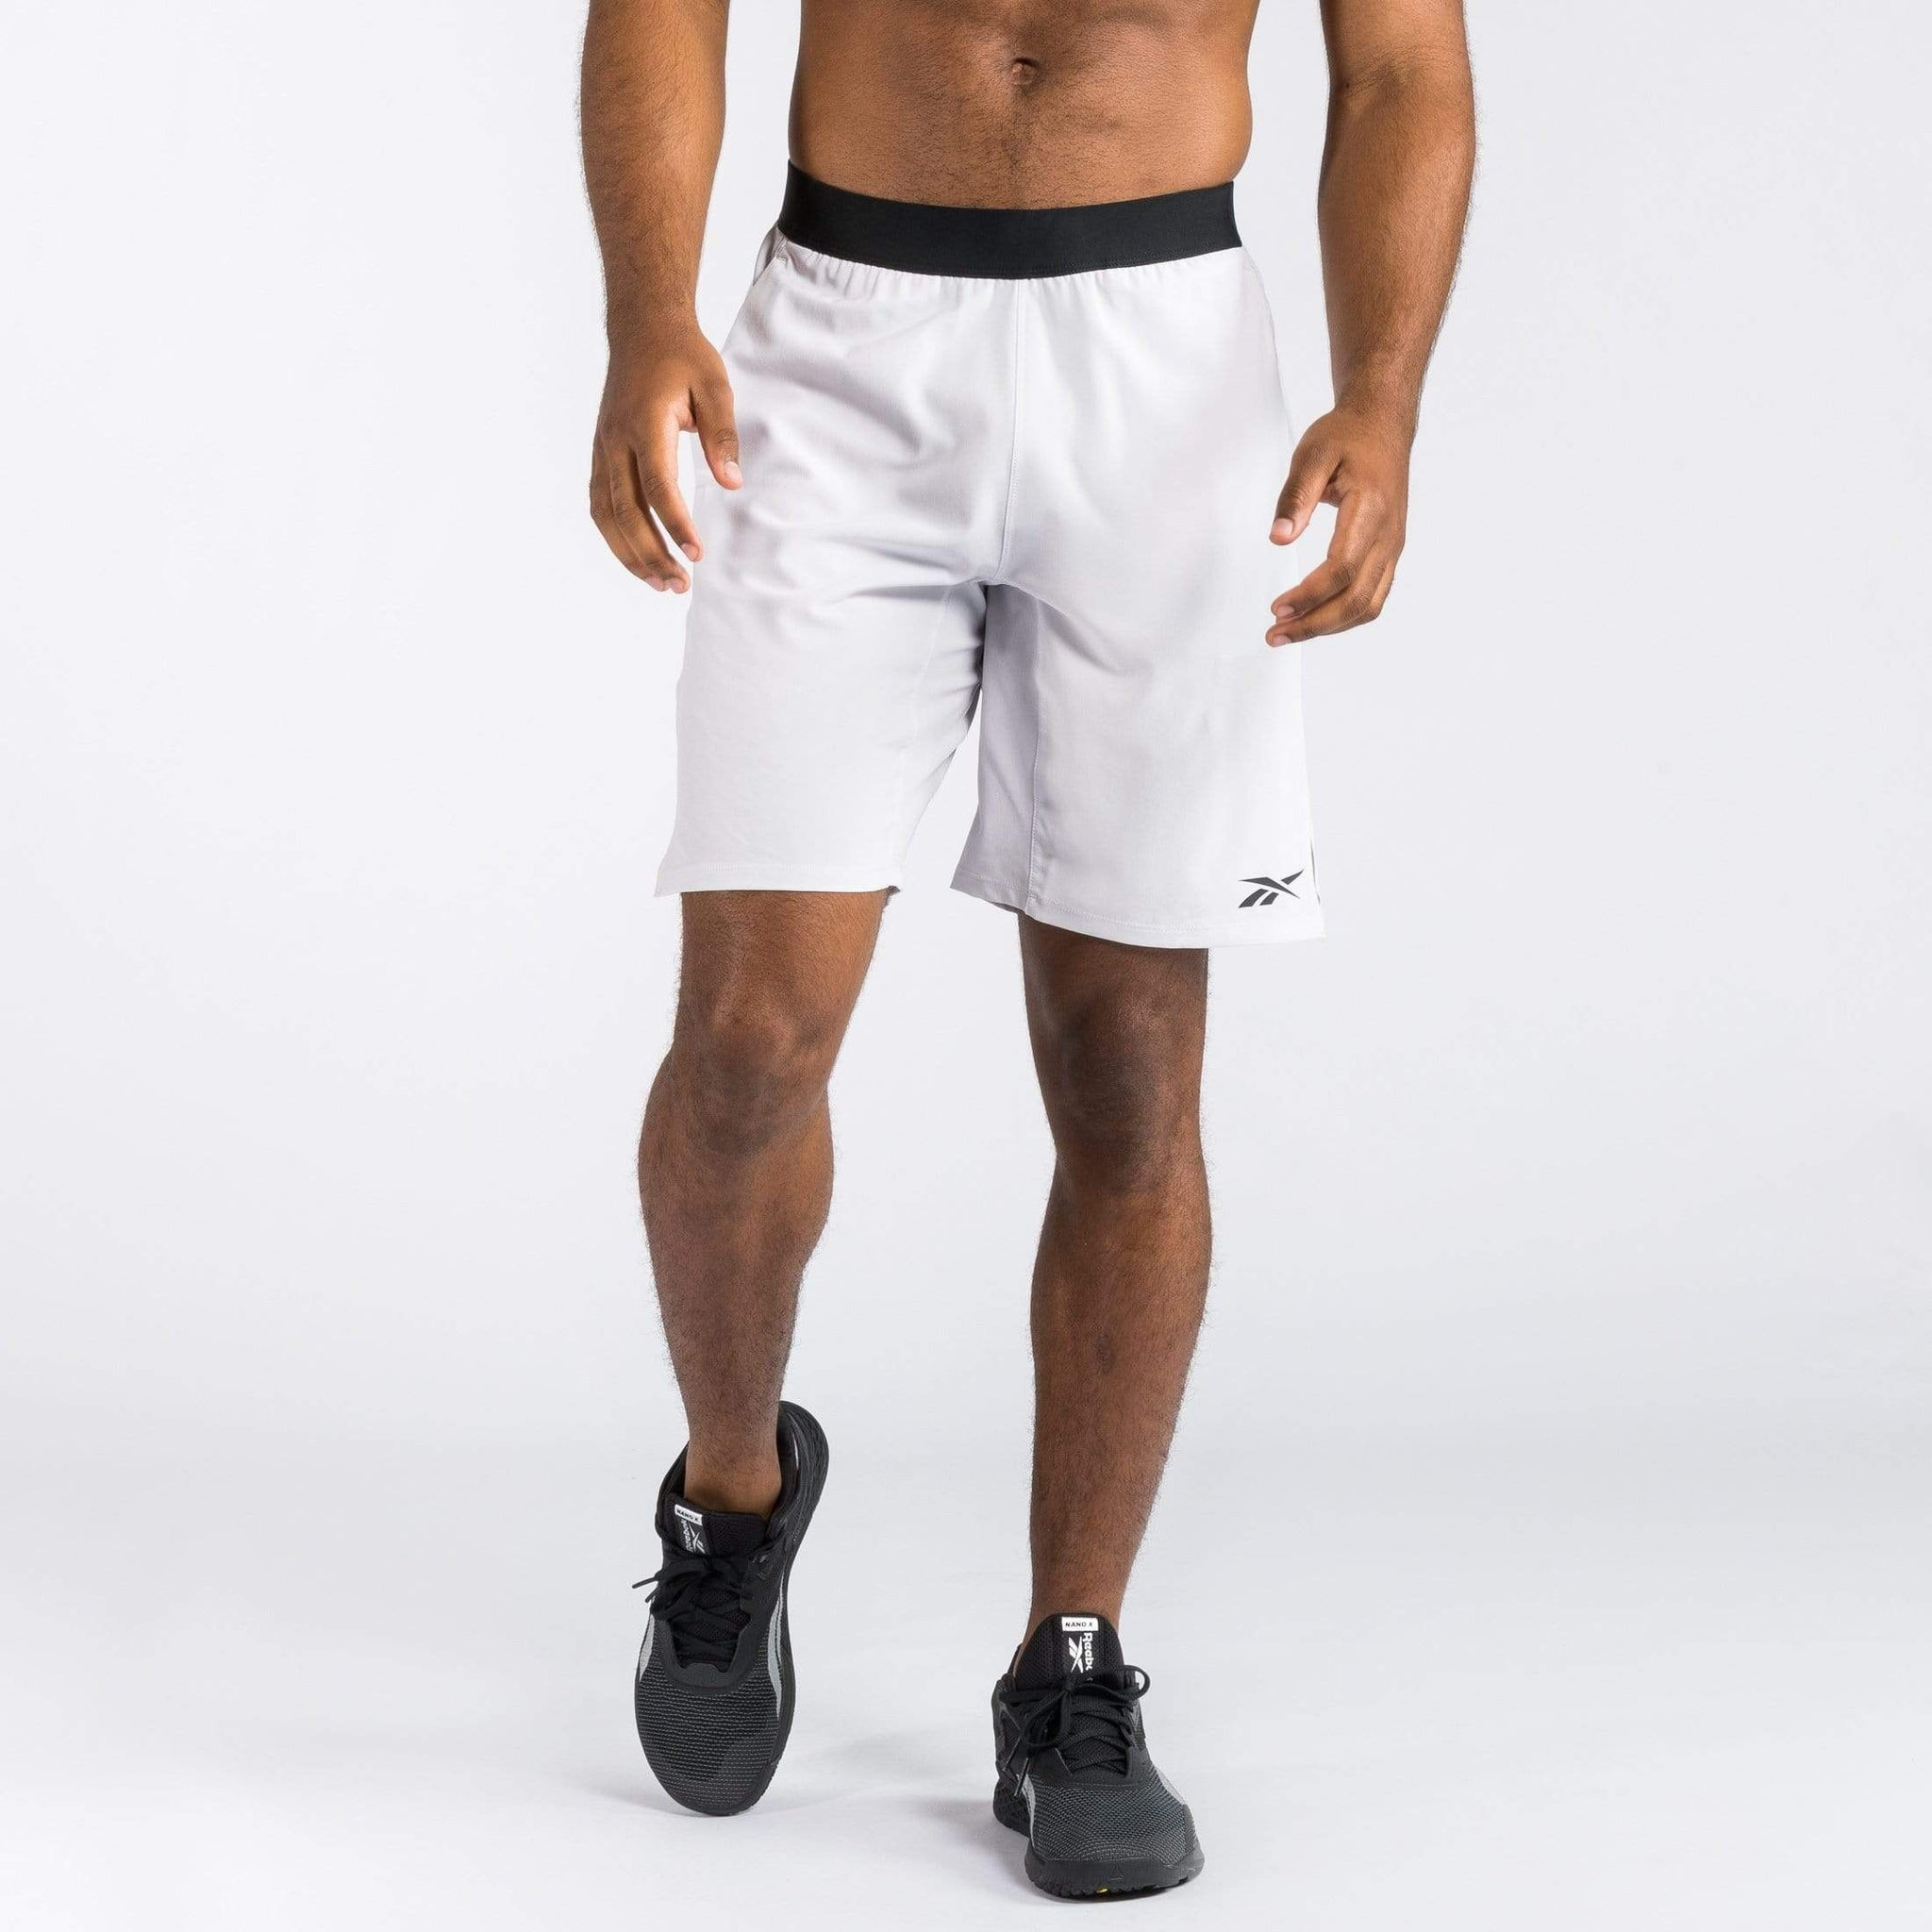 Reebok Speed Shorts Shorts